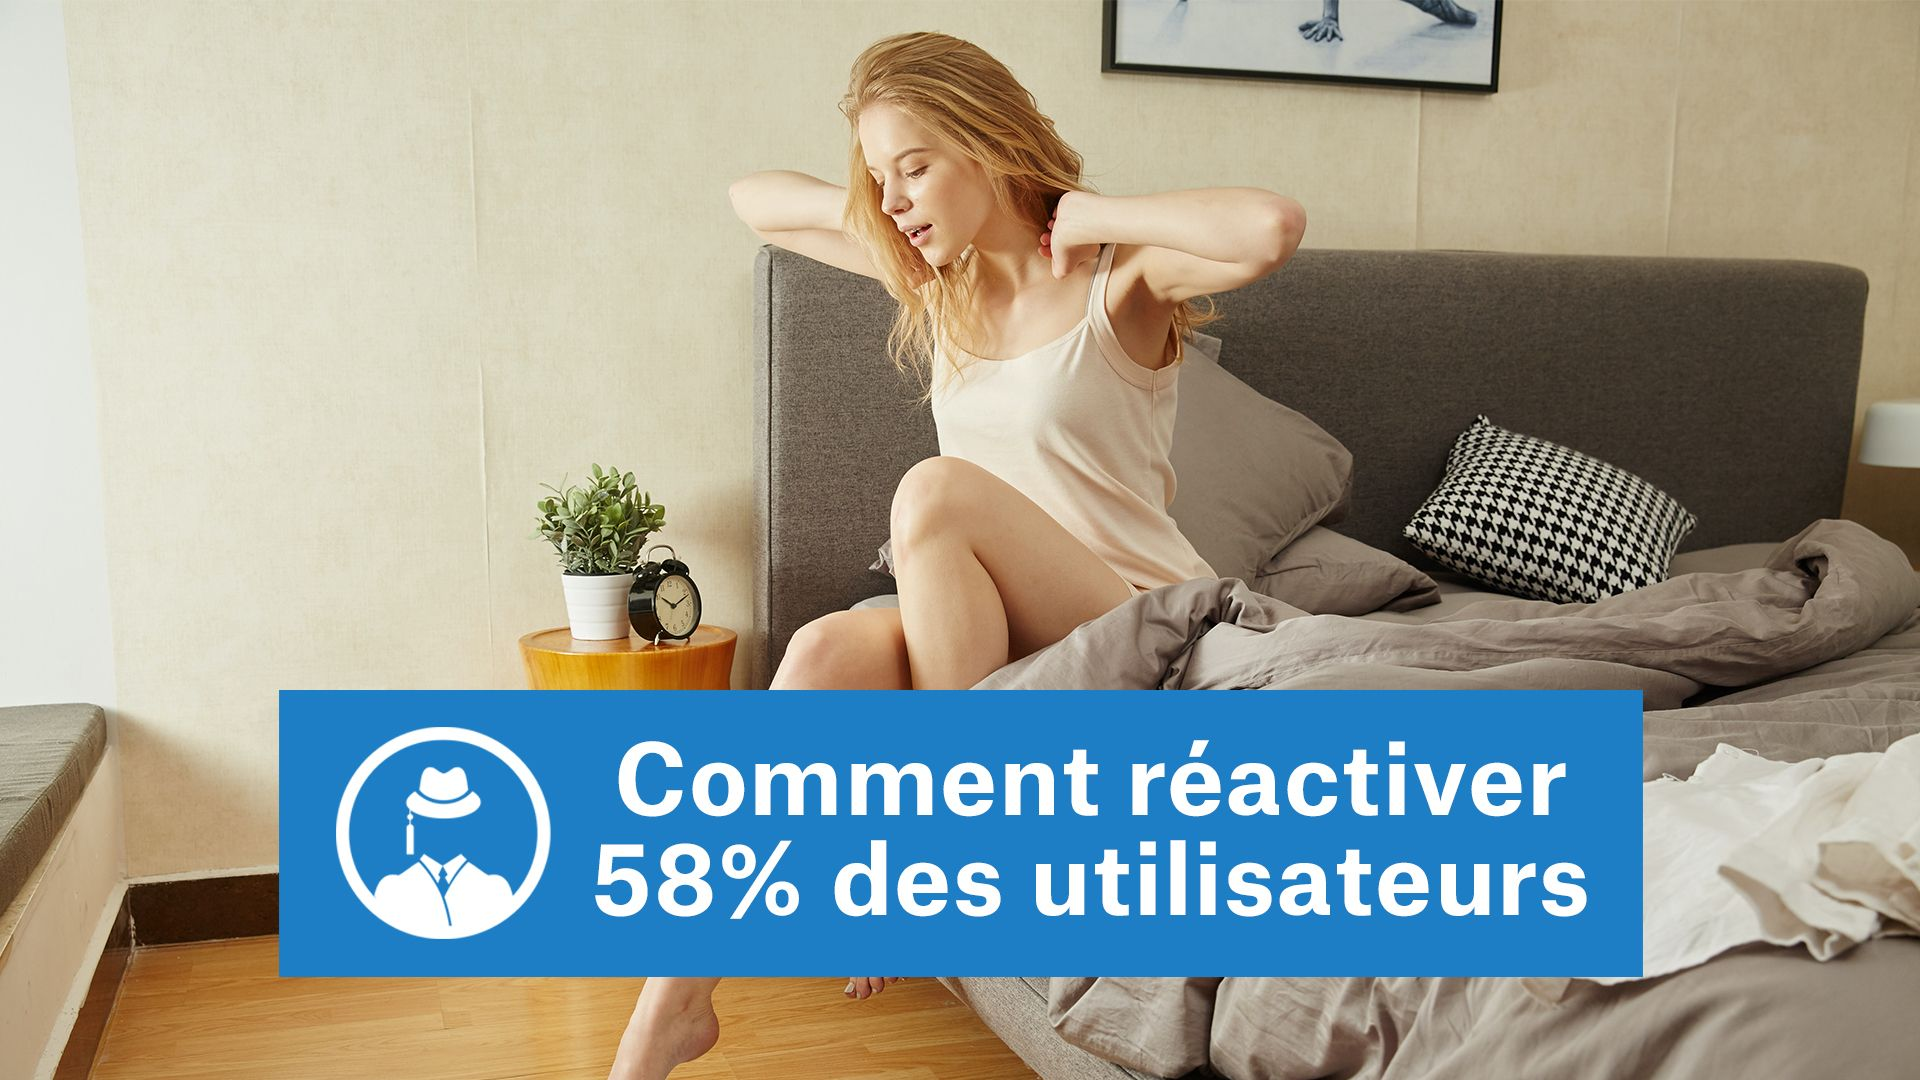 Comment réactiver 58% des utilisateurs #GrowthHacking #WebMarketing #FormationGrowthHacking #CentreDeFormationFrance #TunnelAARRR #AARRR #SocialMedia #CommunityManagement #SEO #MarketingDigital #SiteWeb